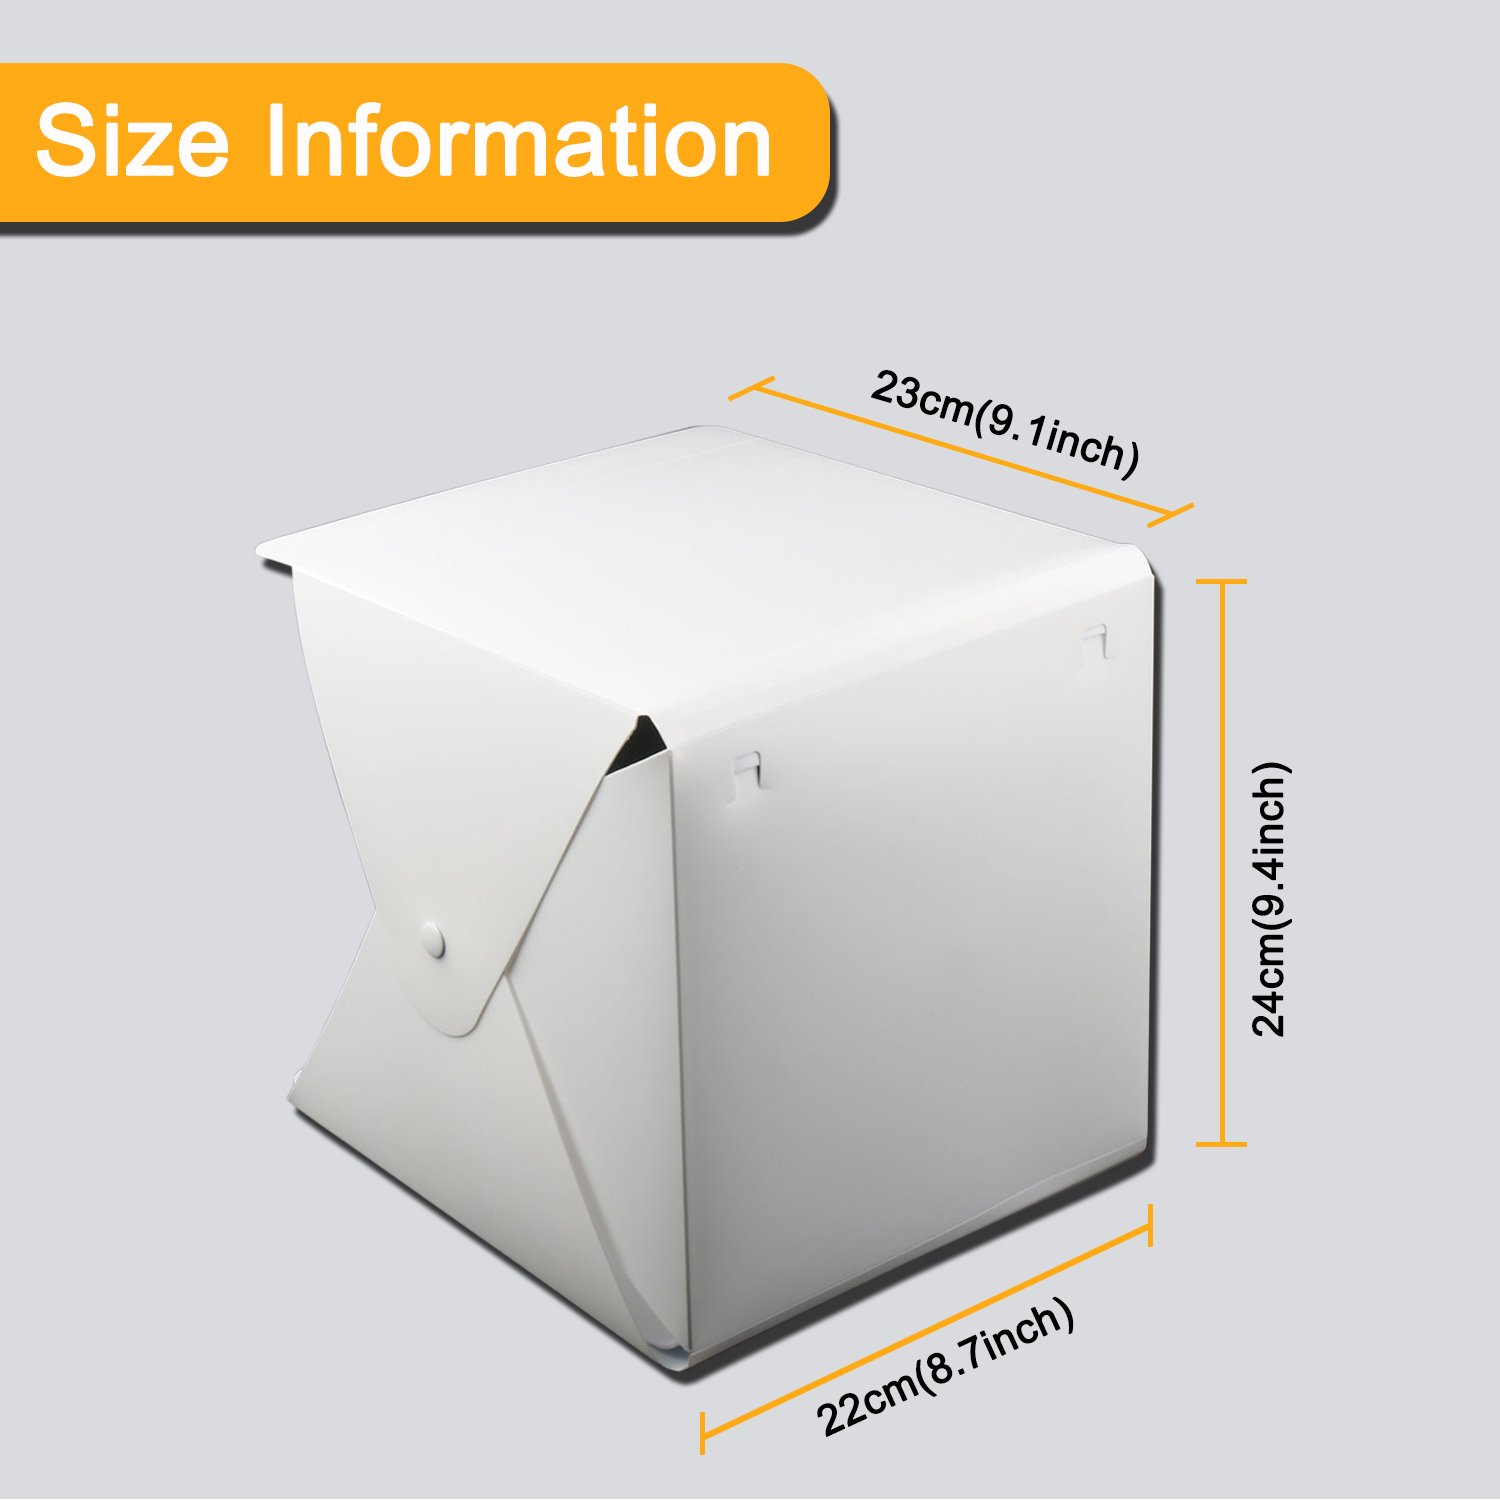 Donwell Portable Photo Studio Tent Light Box Folding Photography Shooting Kit with Adjustable LED Lights and 6 Colors Background New 2018 (Size: 9.8'' x 9.5'' x 9'') by DONWELL (Image #7)